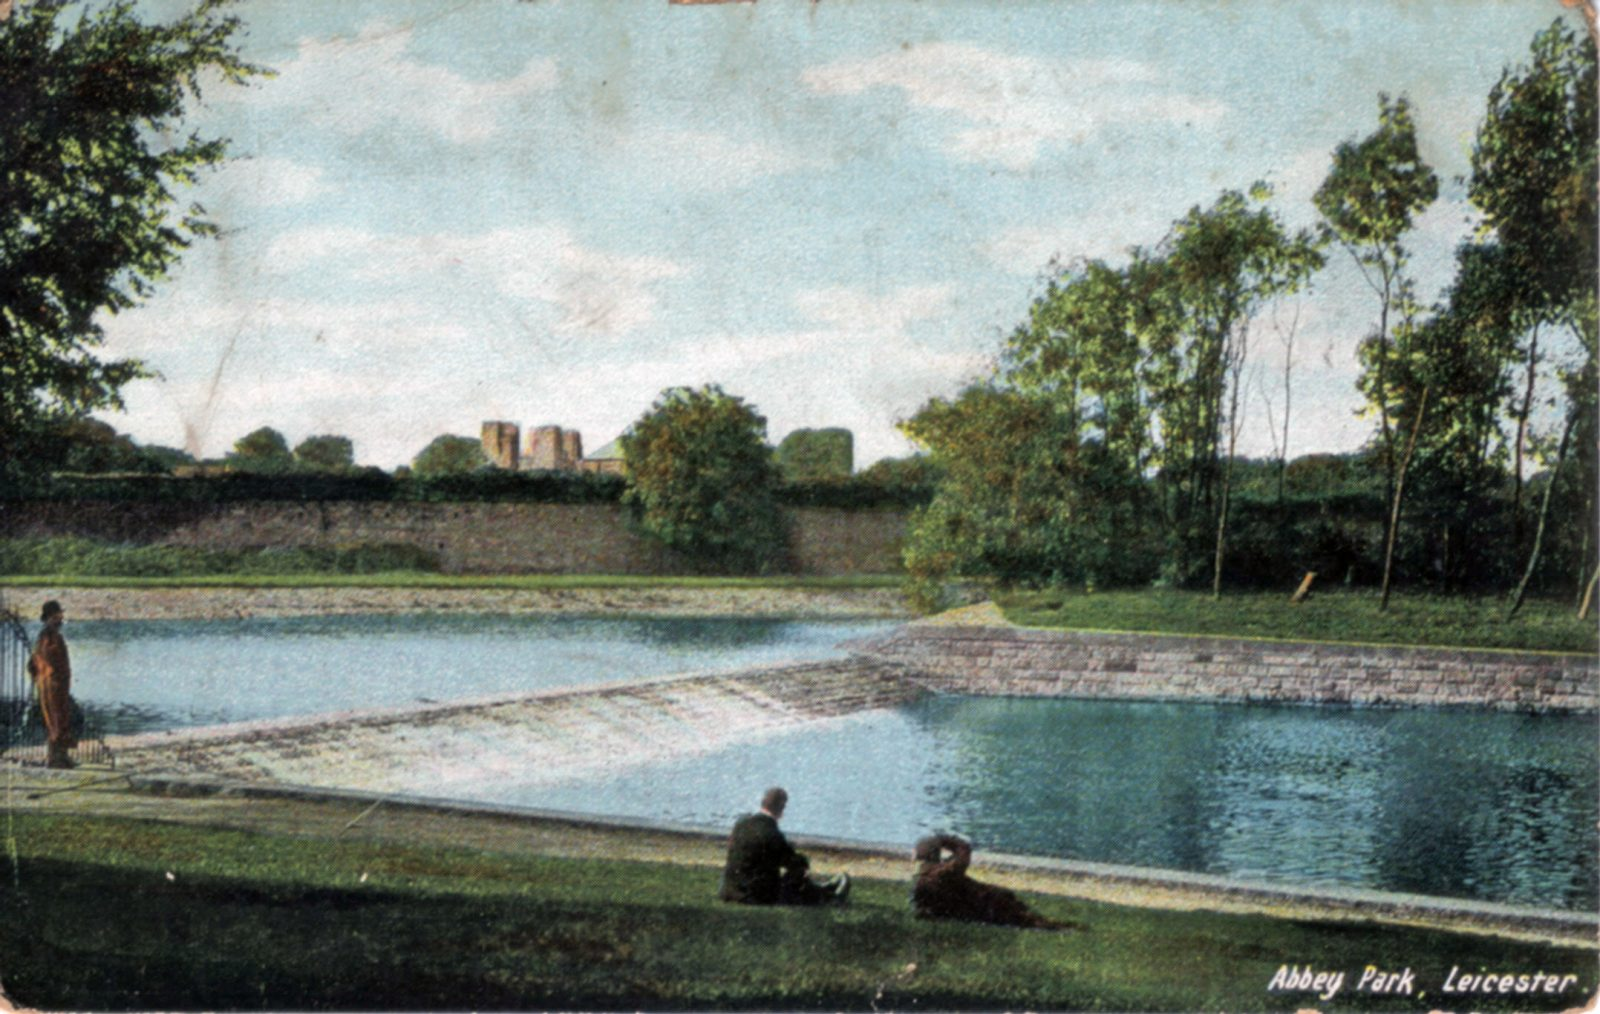 Abbey Park, Leicester. 1901-1920: The River Soar and weir. Foreground figures. Franked 1908 (File:1046)